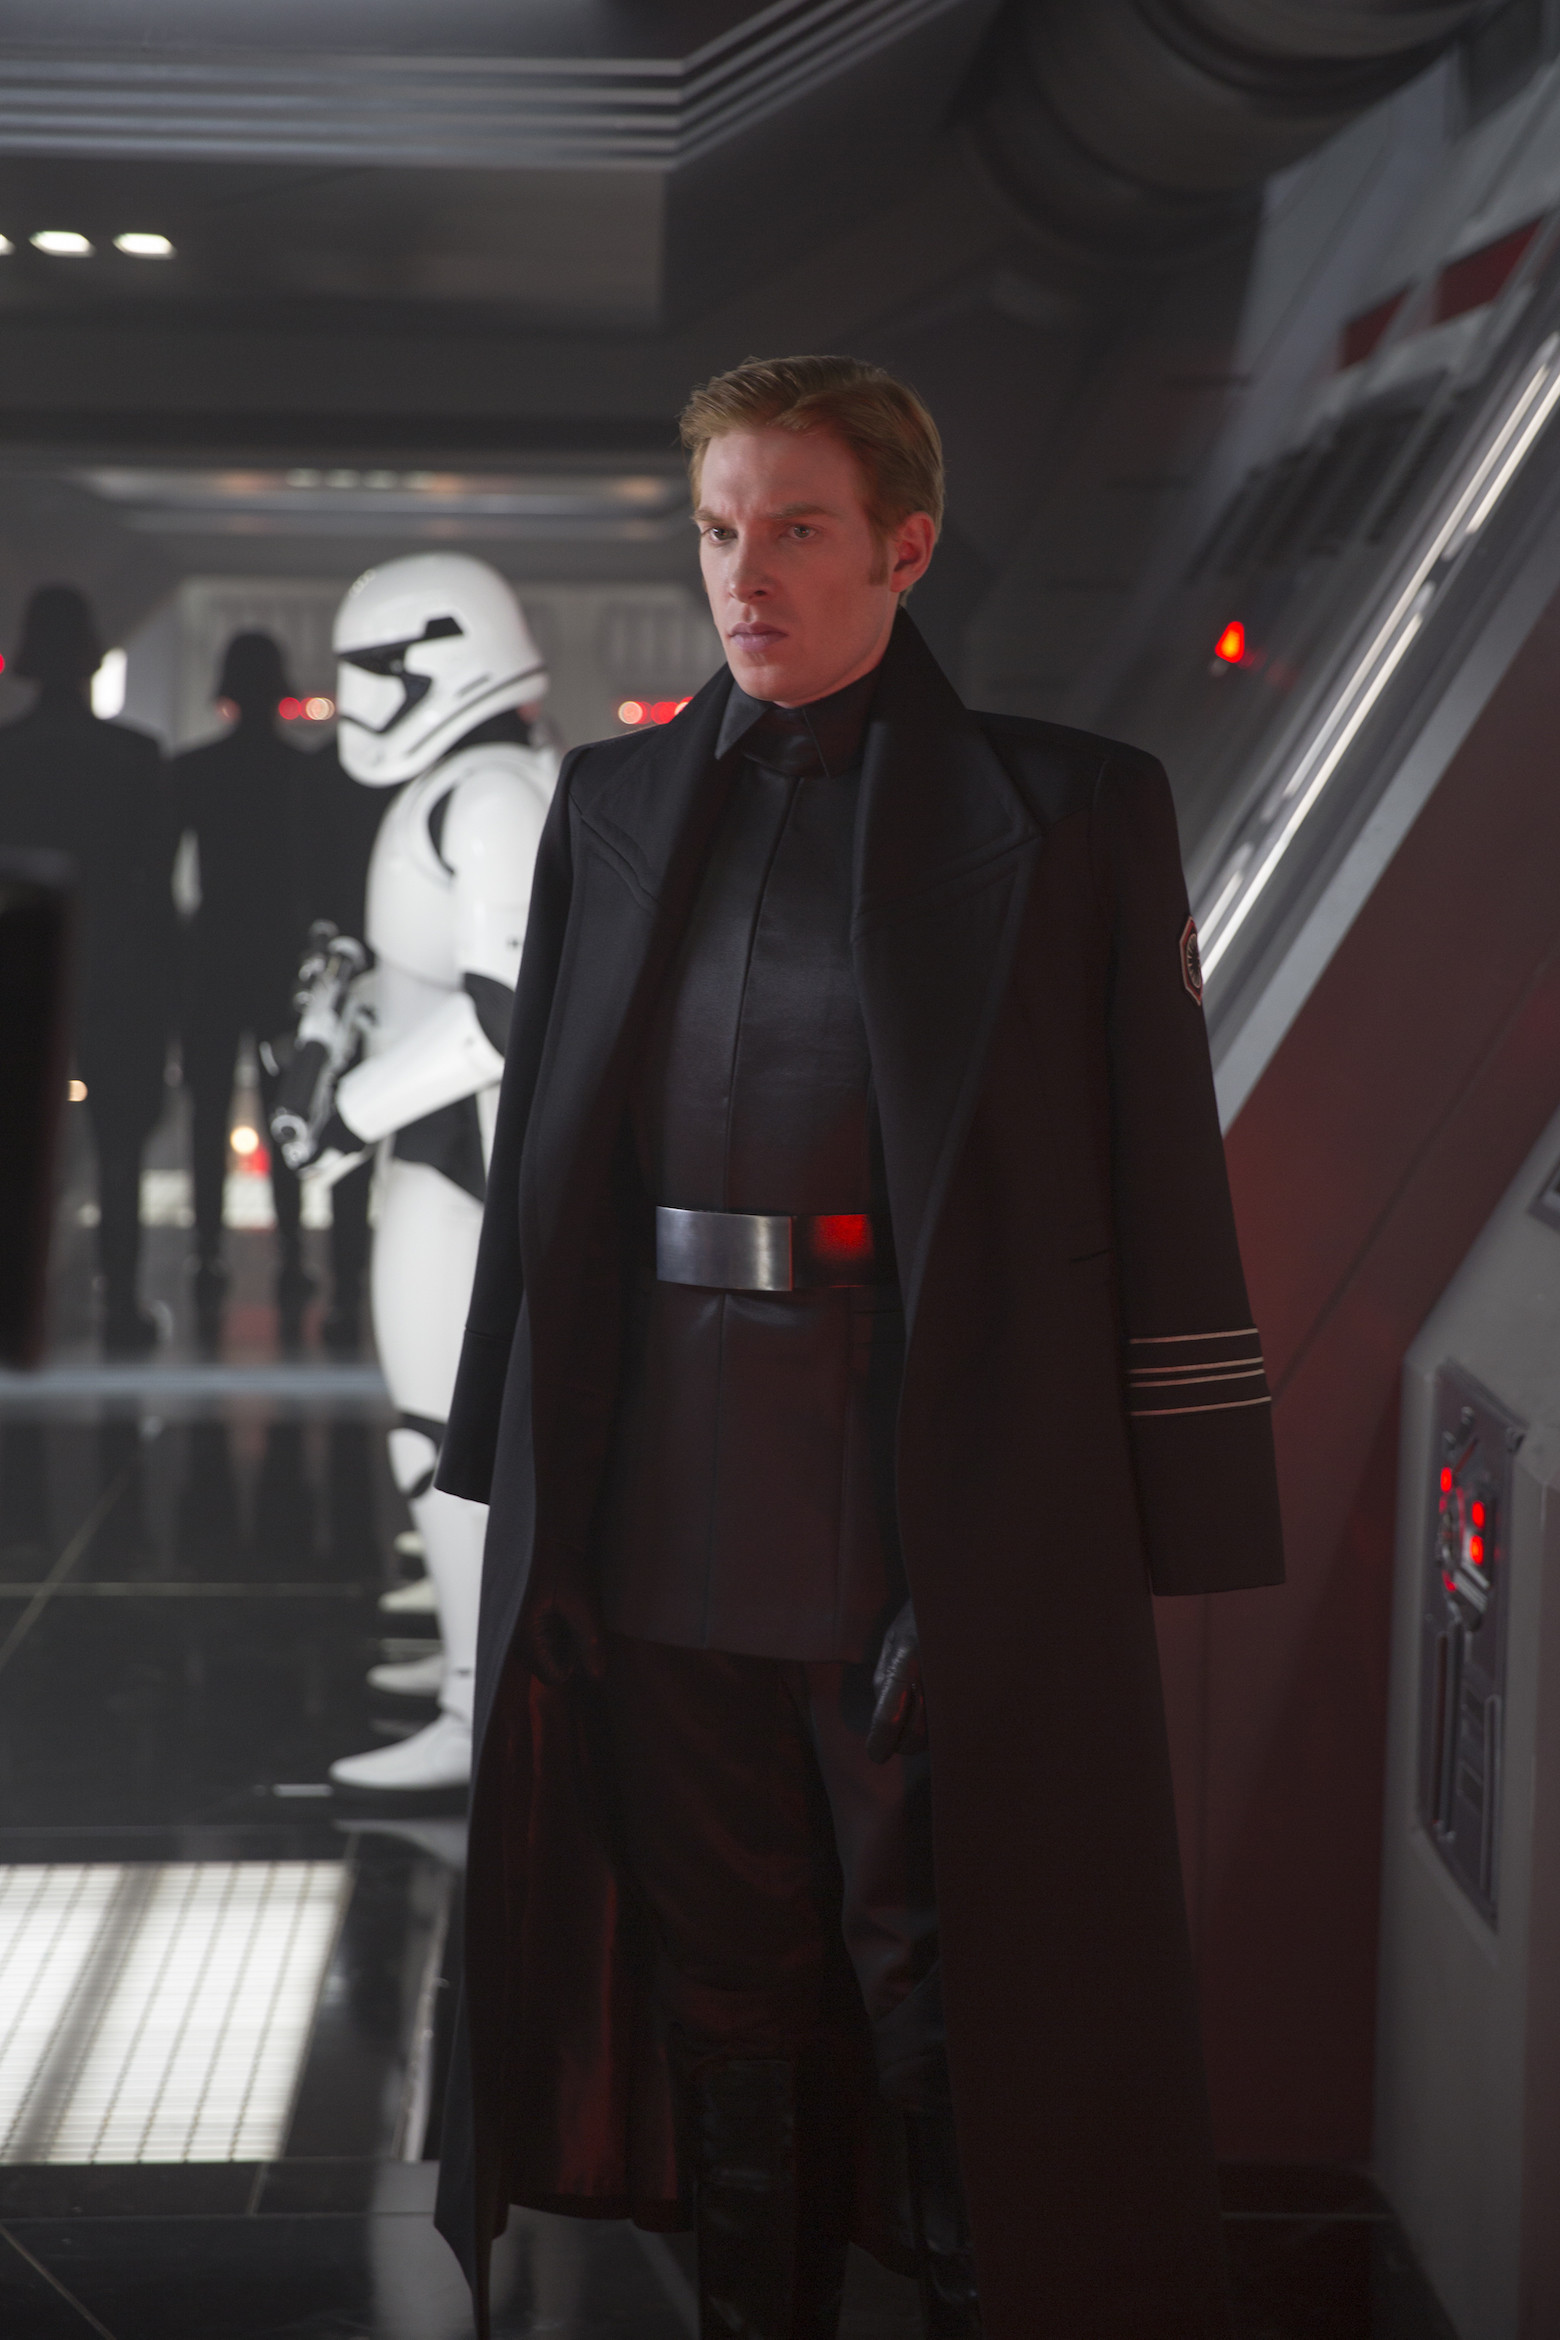 General Hux of the First Order Star Wars 7.